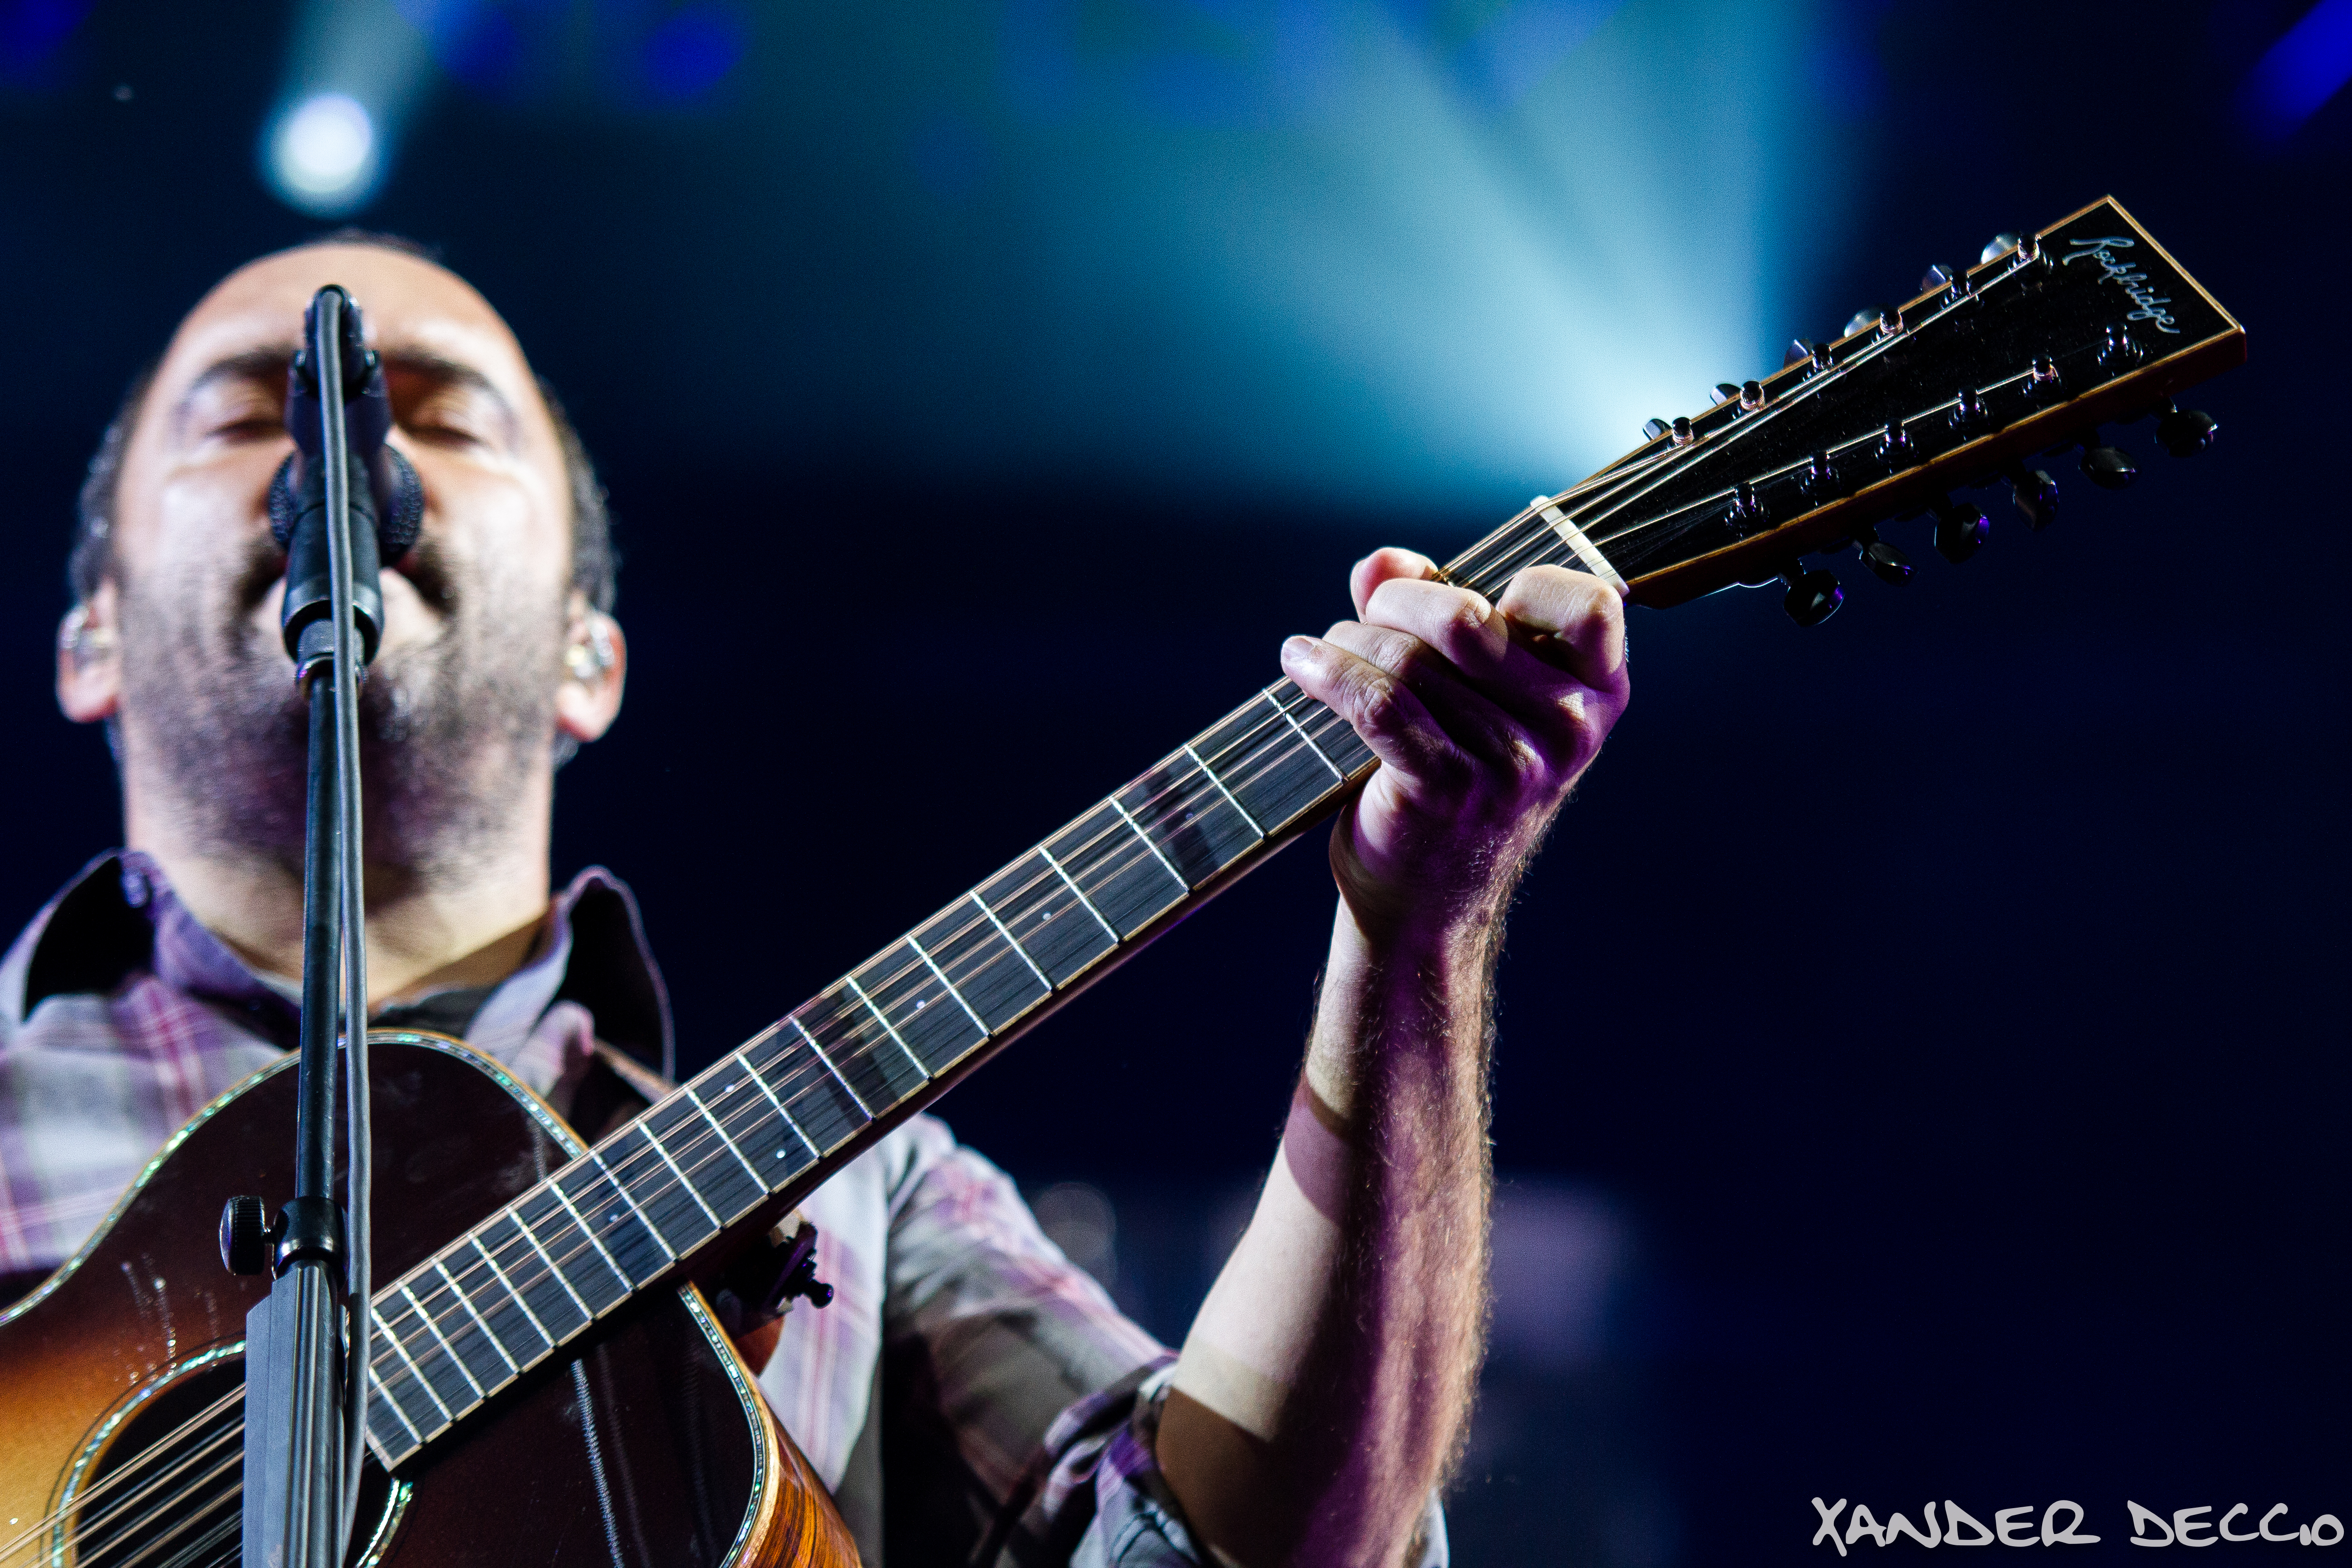 Dave Matthews Band at The Gorge (Photo by Xander Deccio)